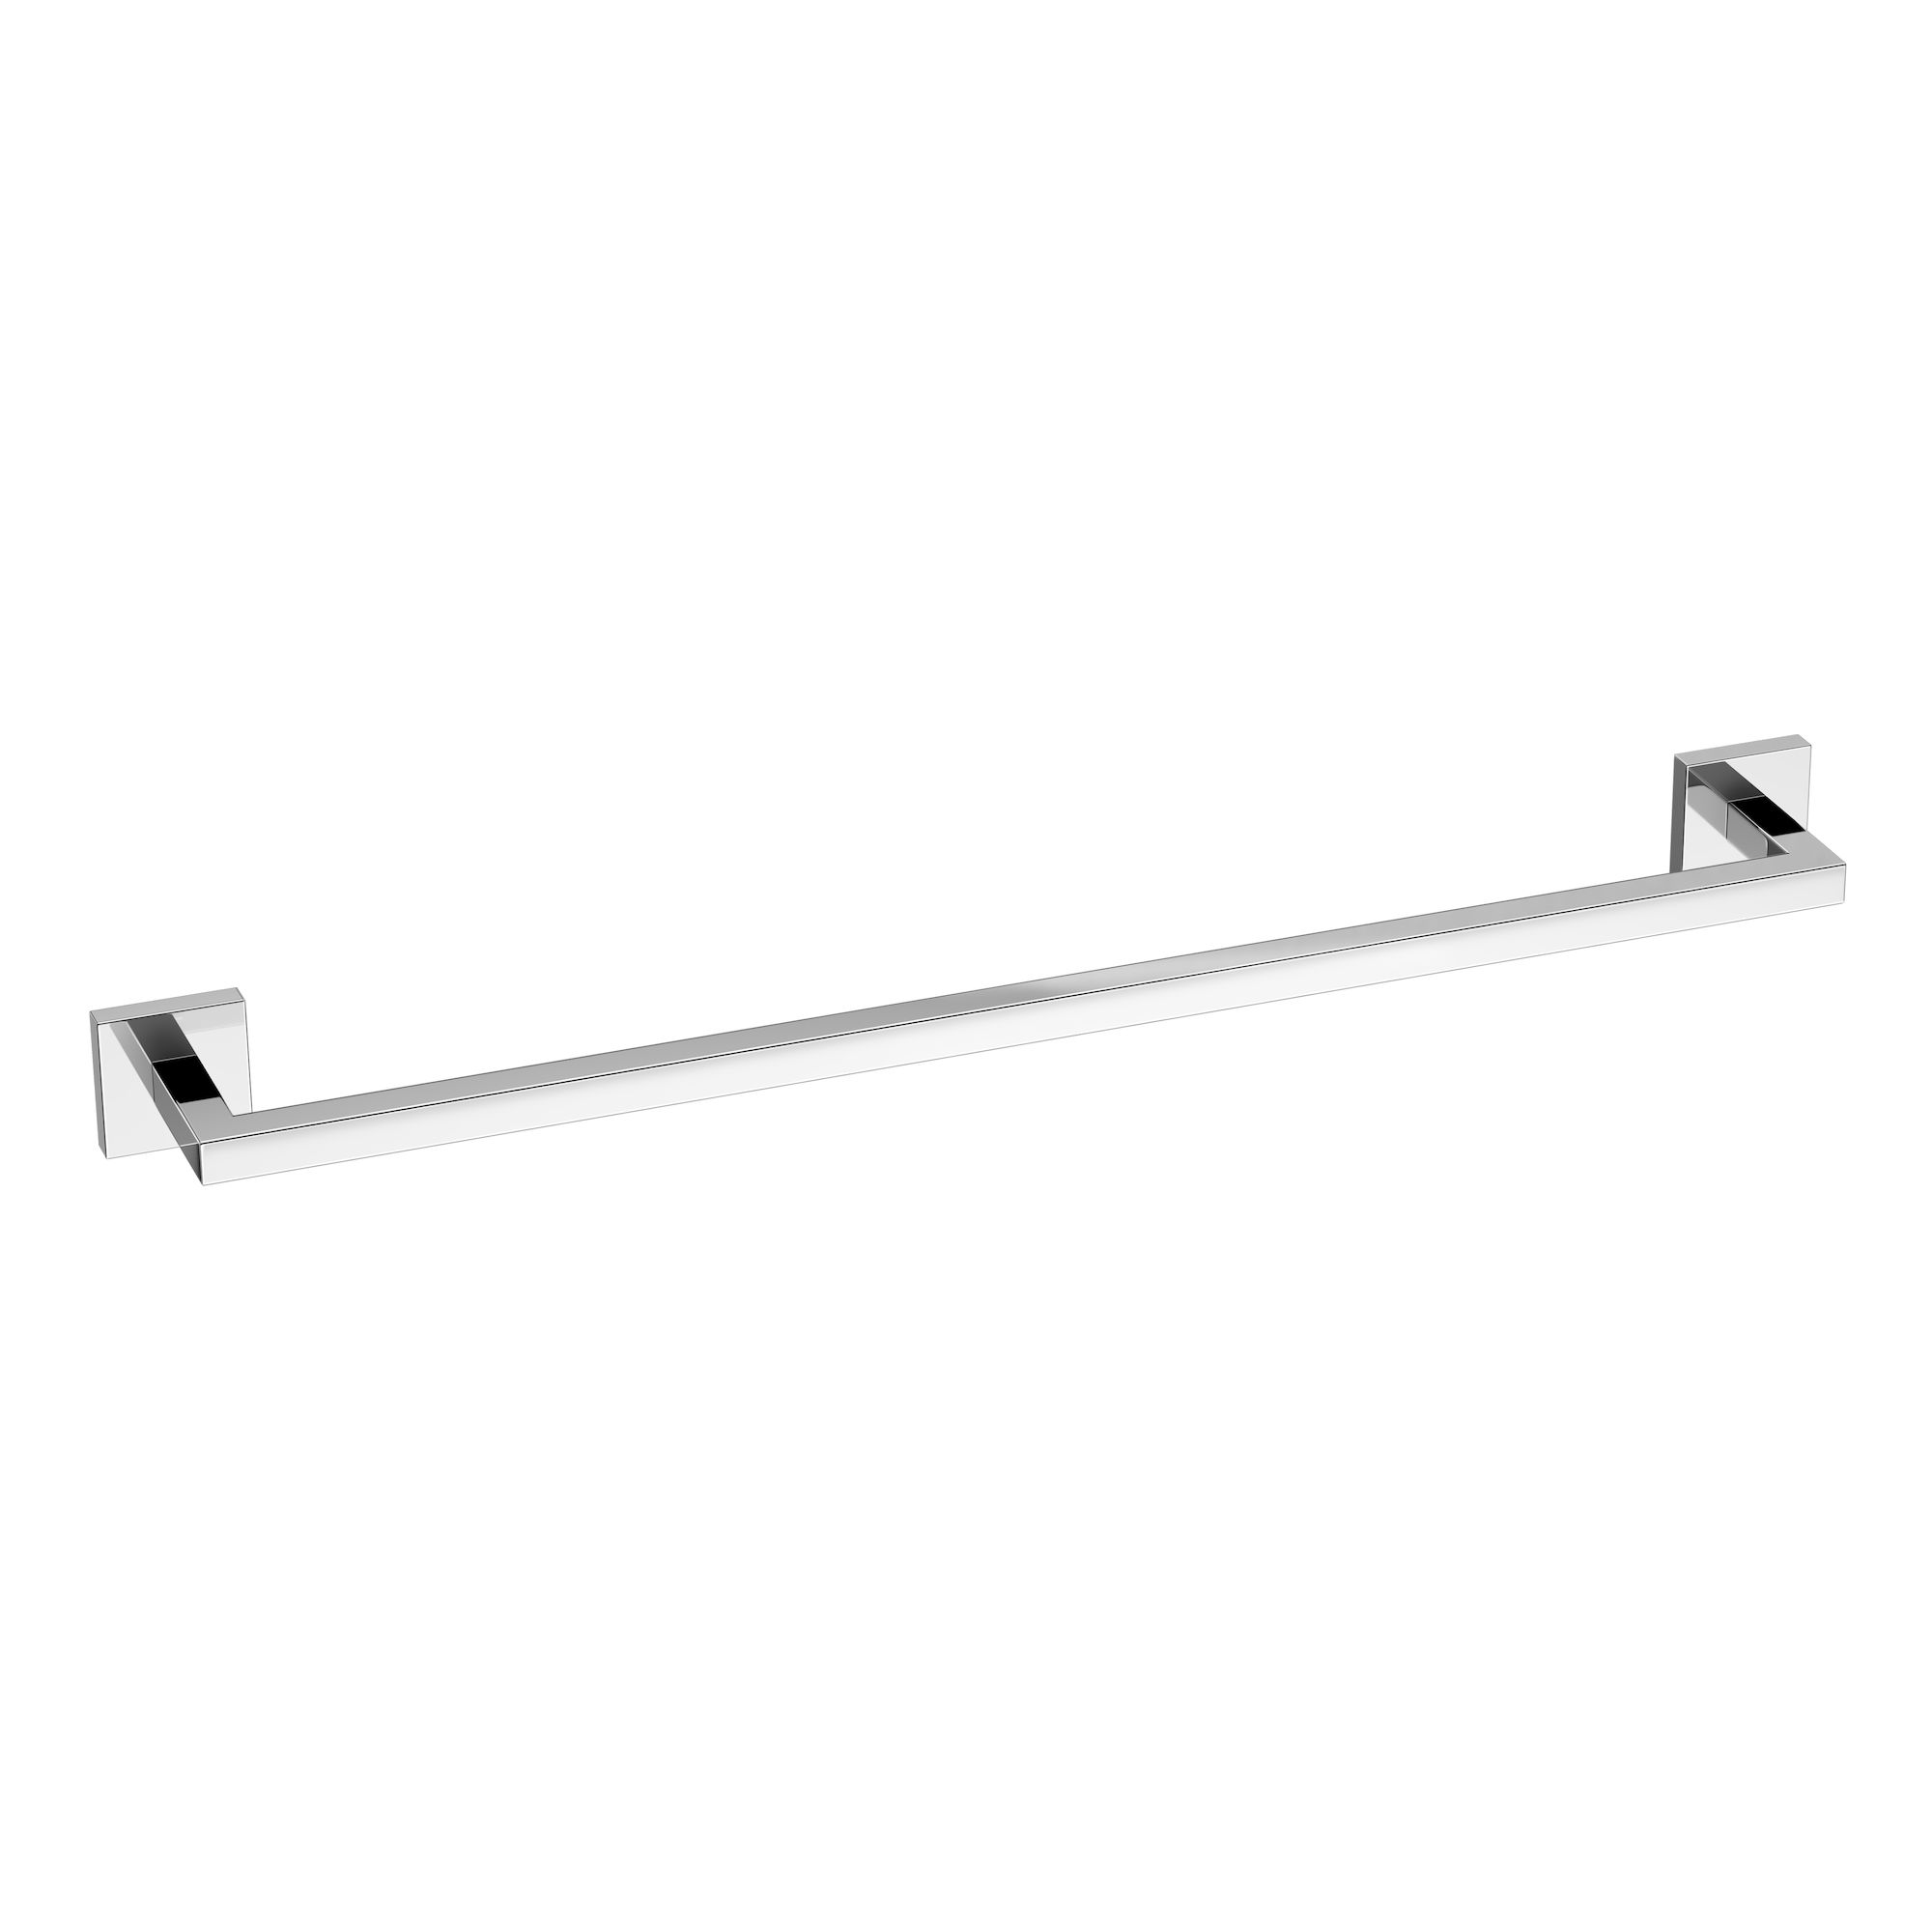 Lot 46 - (NF114) Jesmond Towel Rail Finishes your bathroom with a little extra functionality and style Made